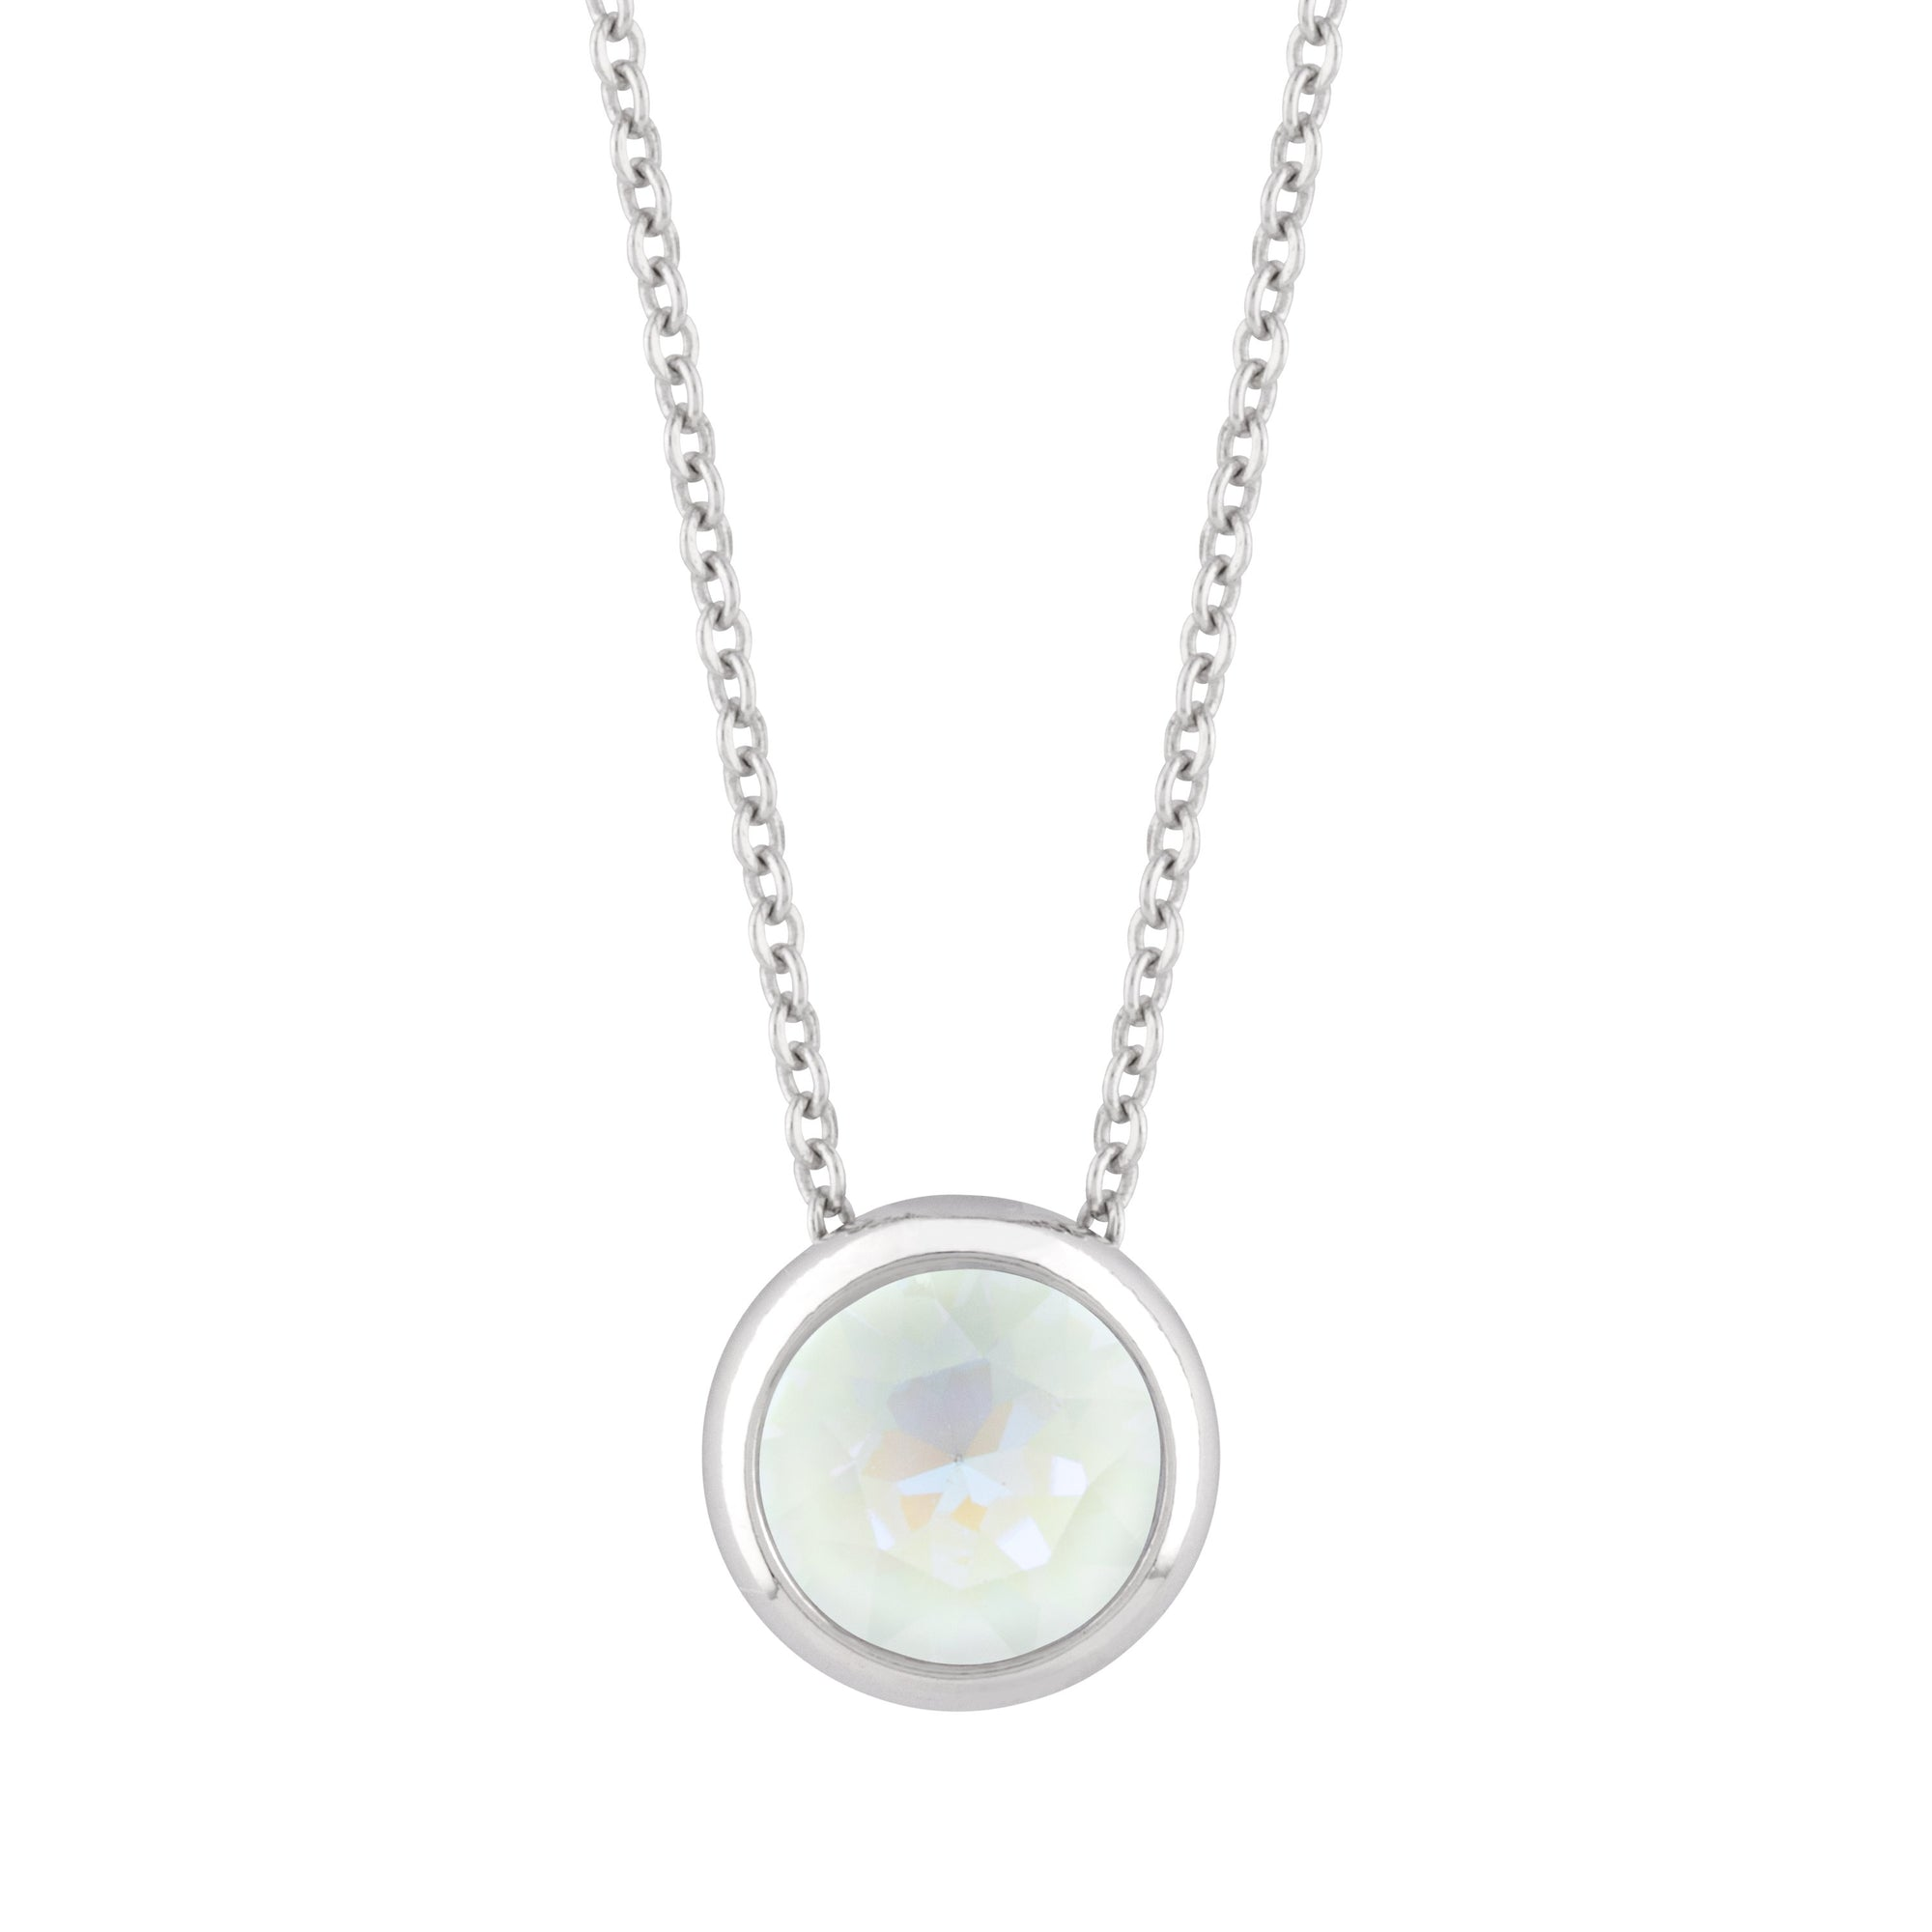 Grace Necklace Light Grey Delite forevercrystals